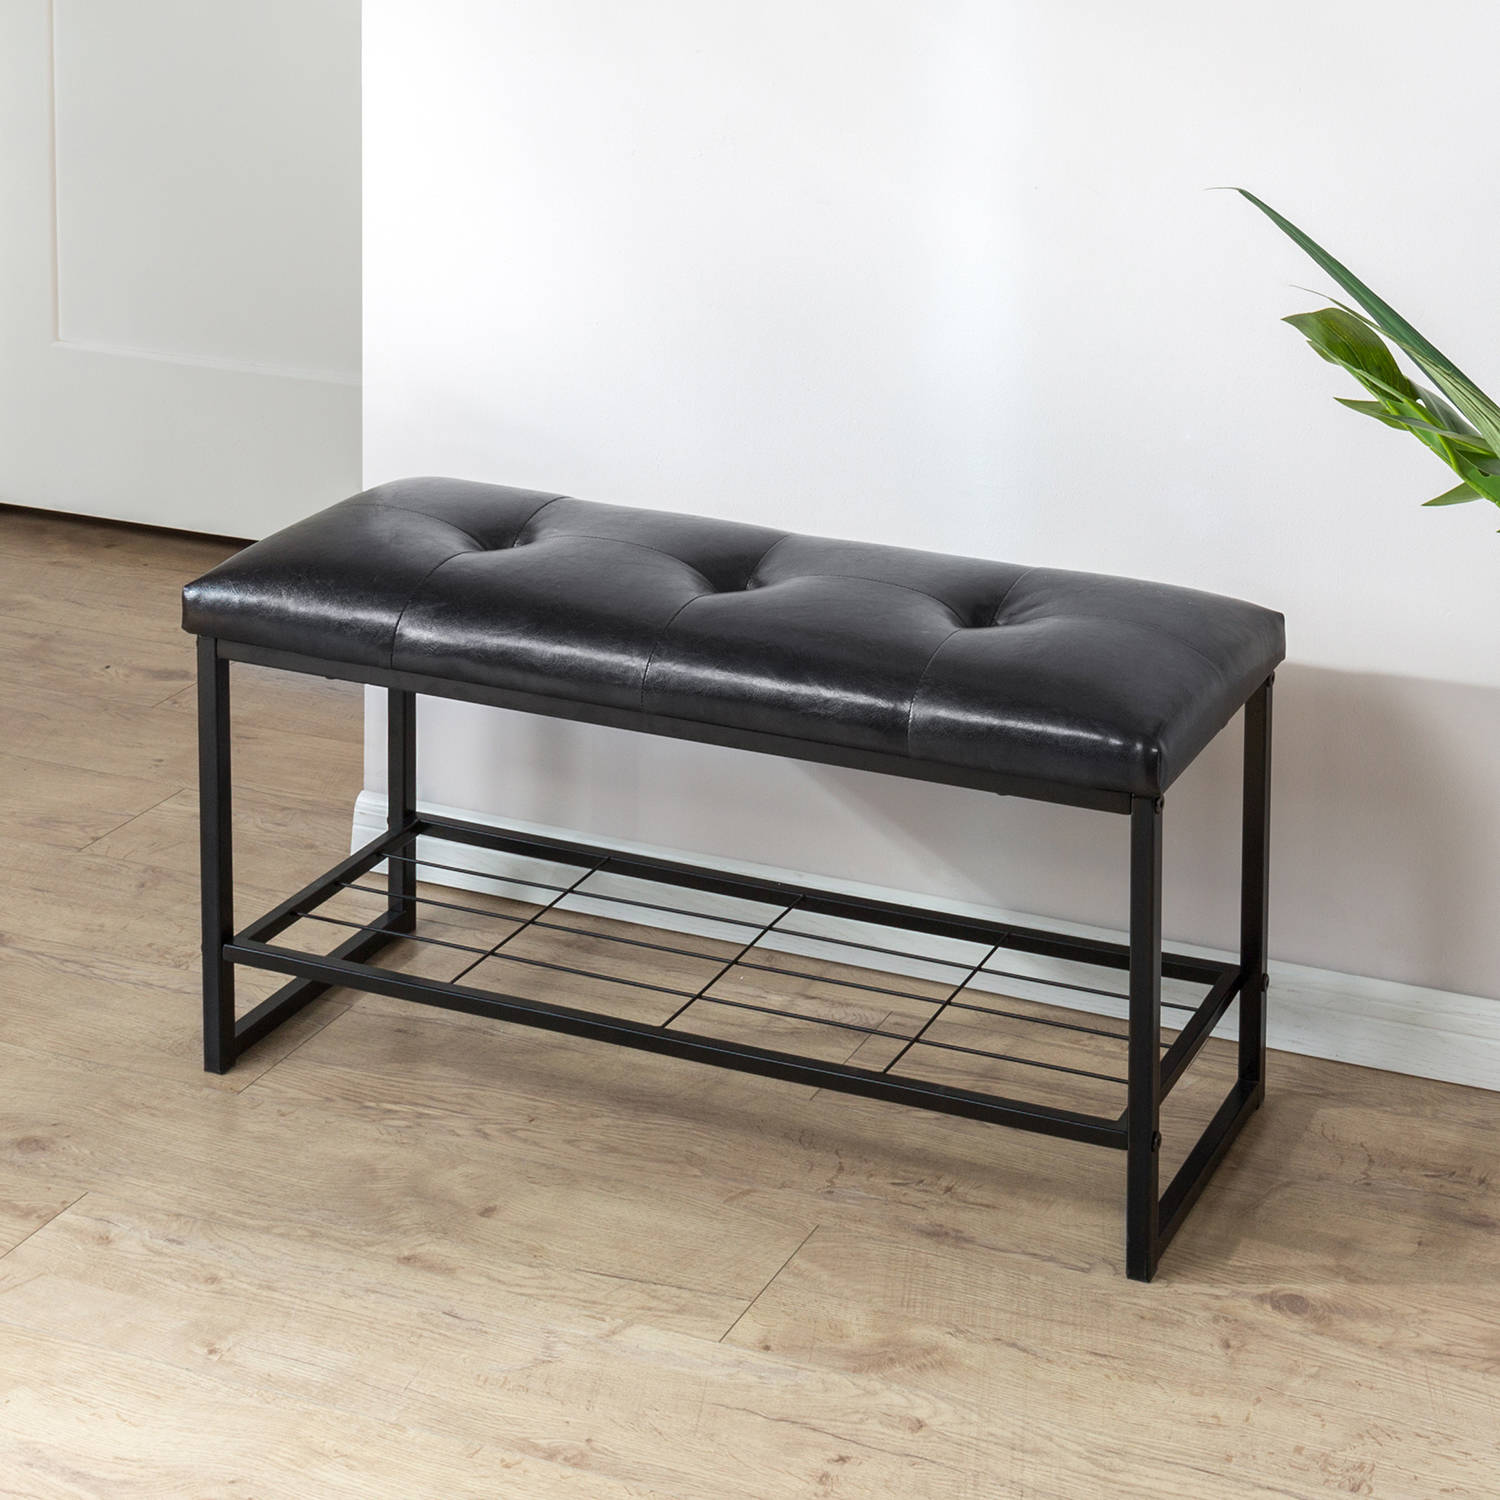 "Zinus Mindy Faux Leather 36"" Tufted Bench with Storage Shelf"